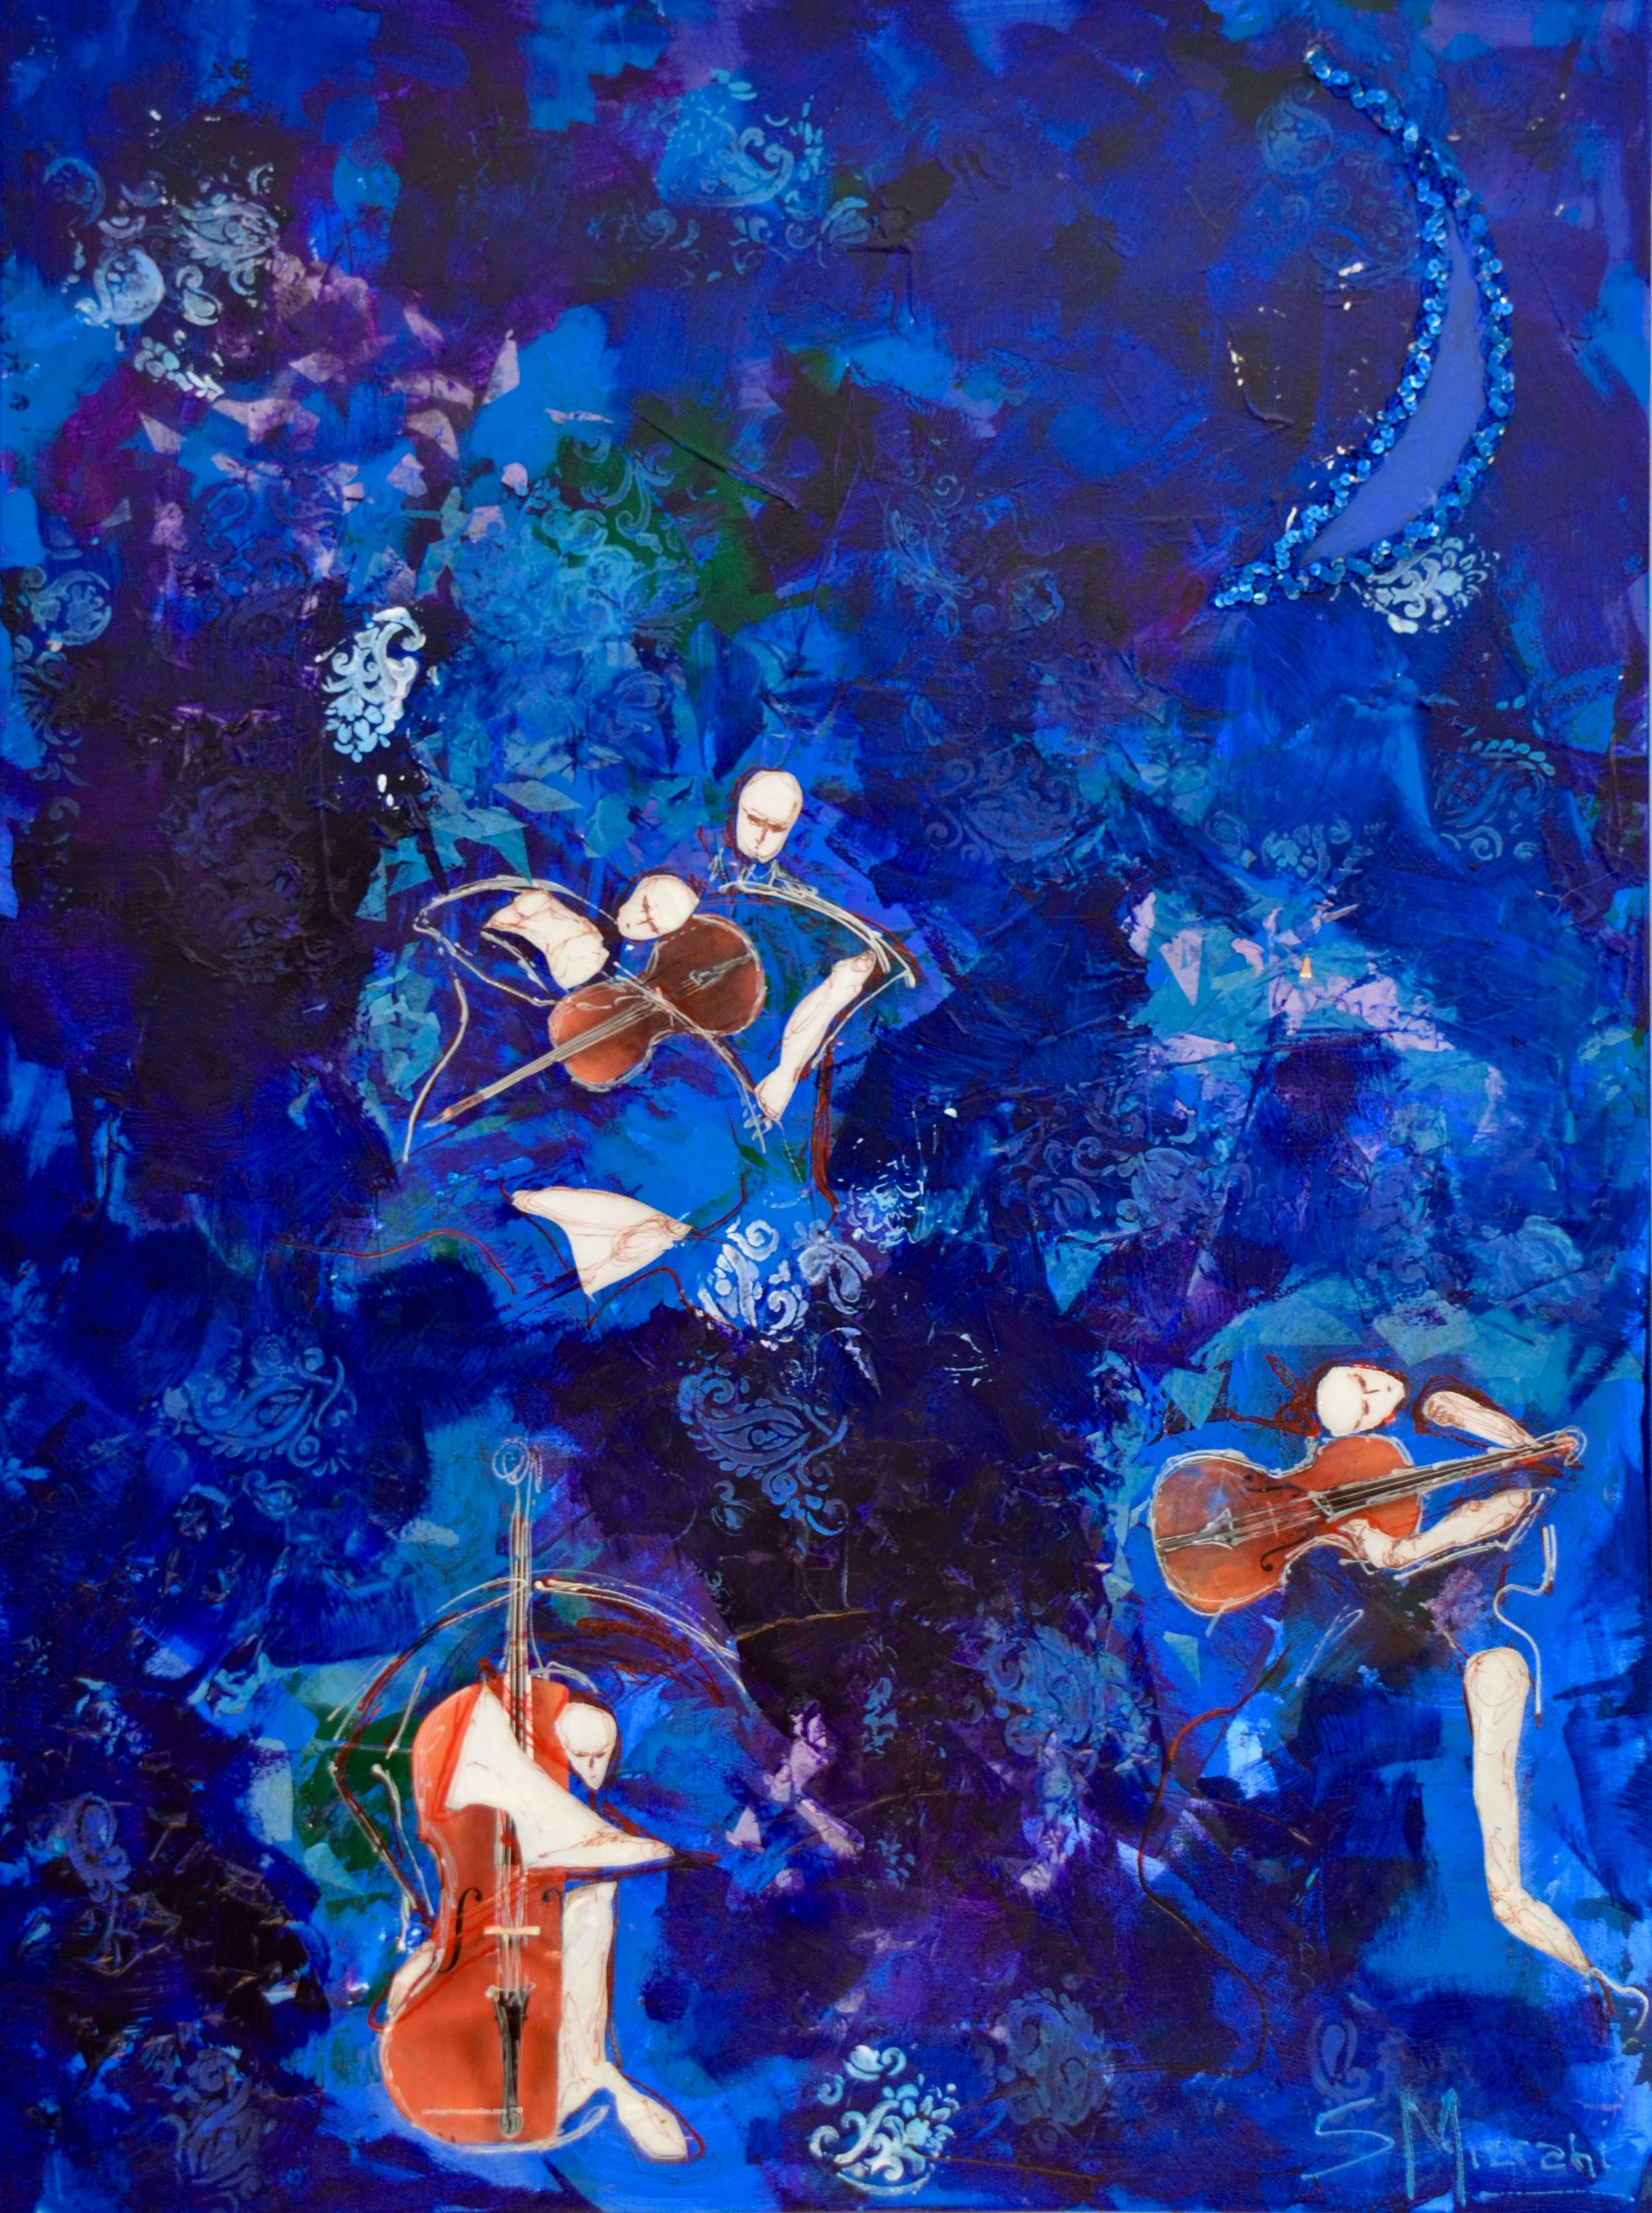 Music in Blue